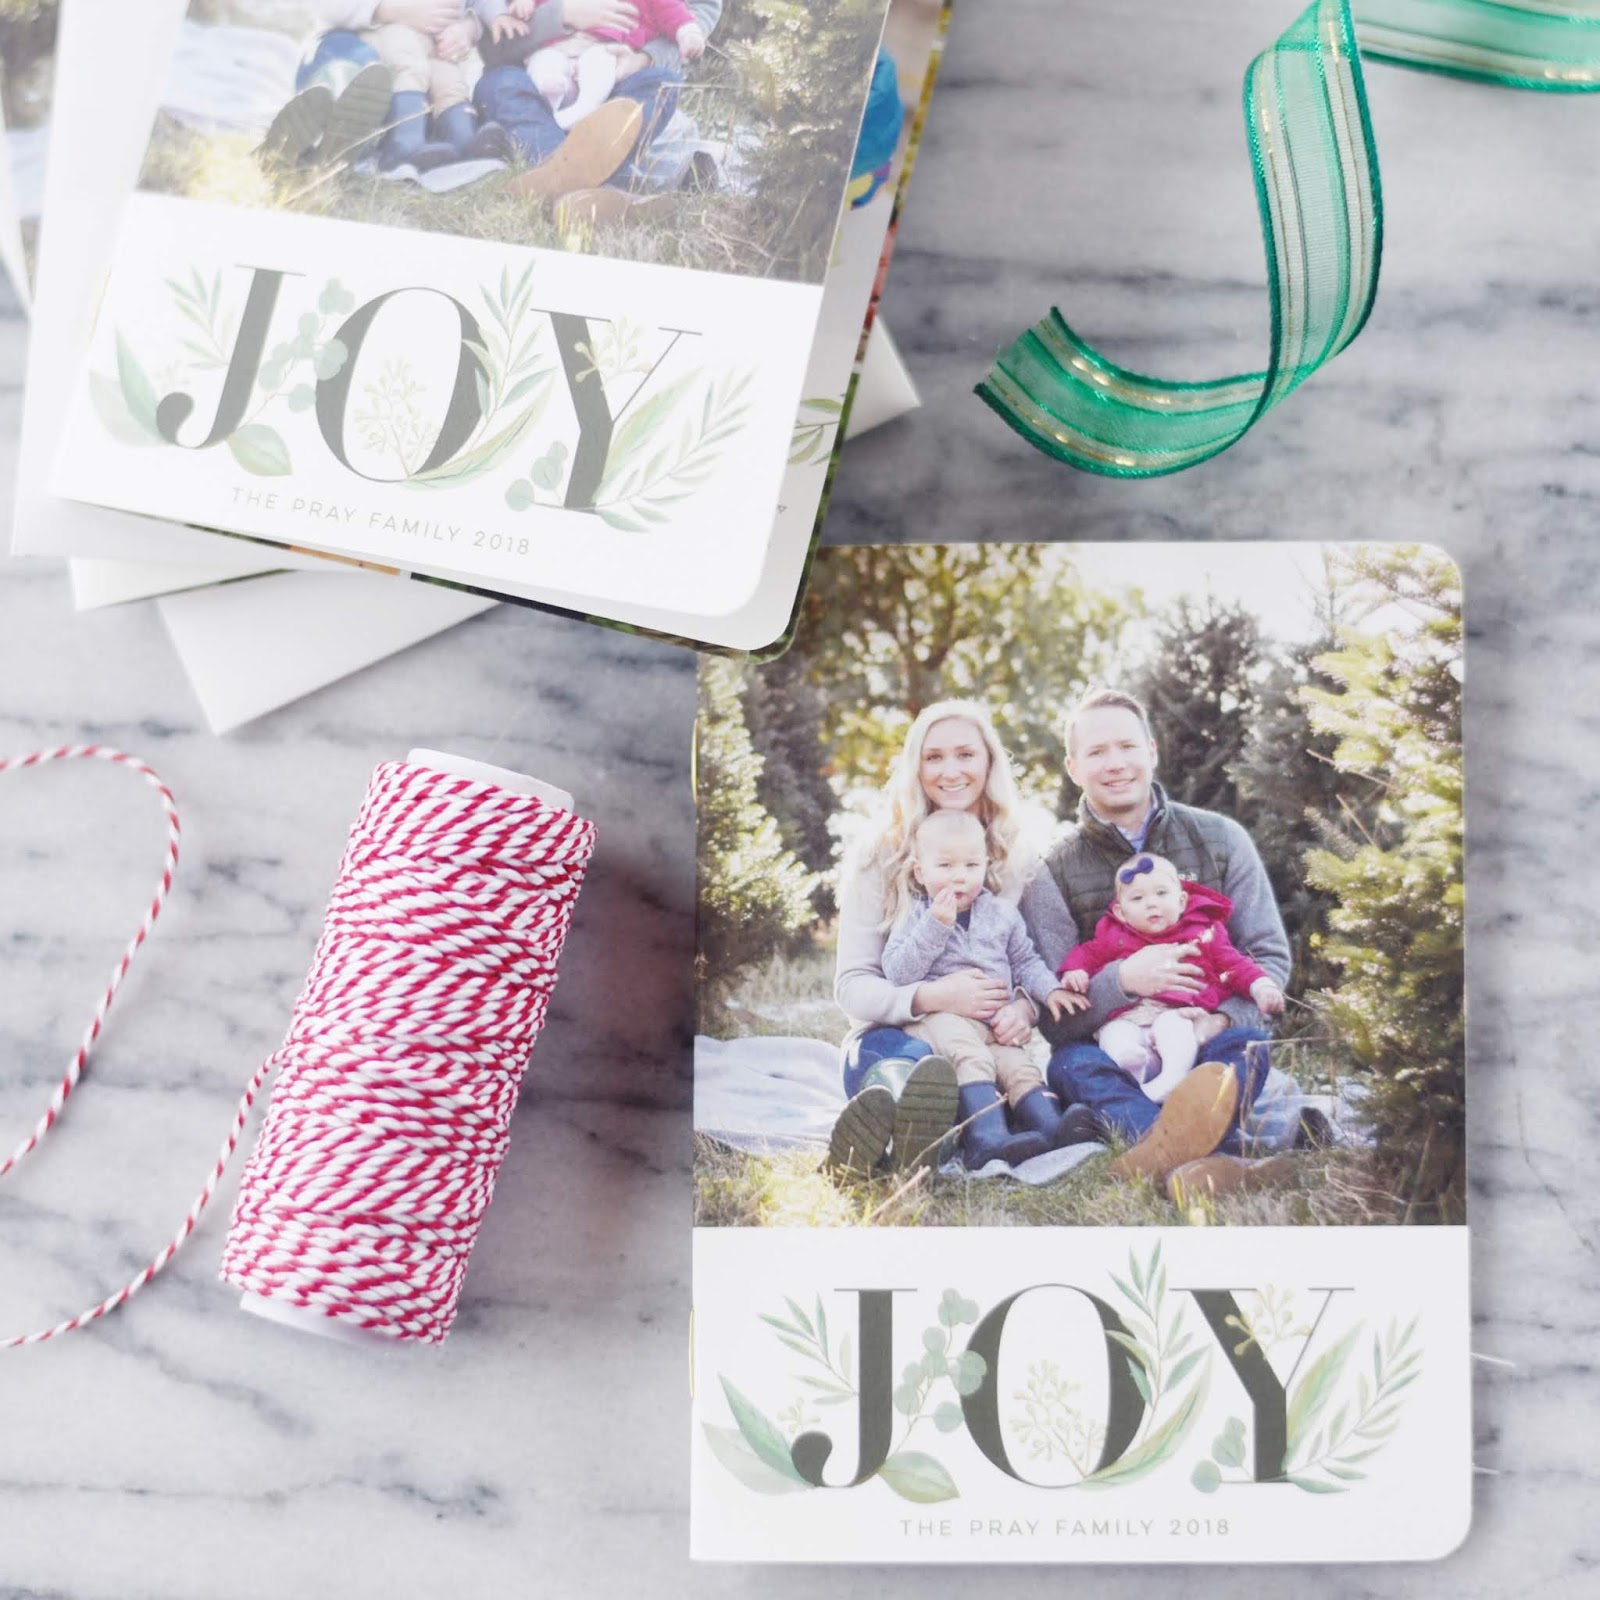 Minted Christmas Cards.Lisa Loves John Christmas Cards With Minted